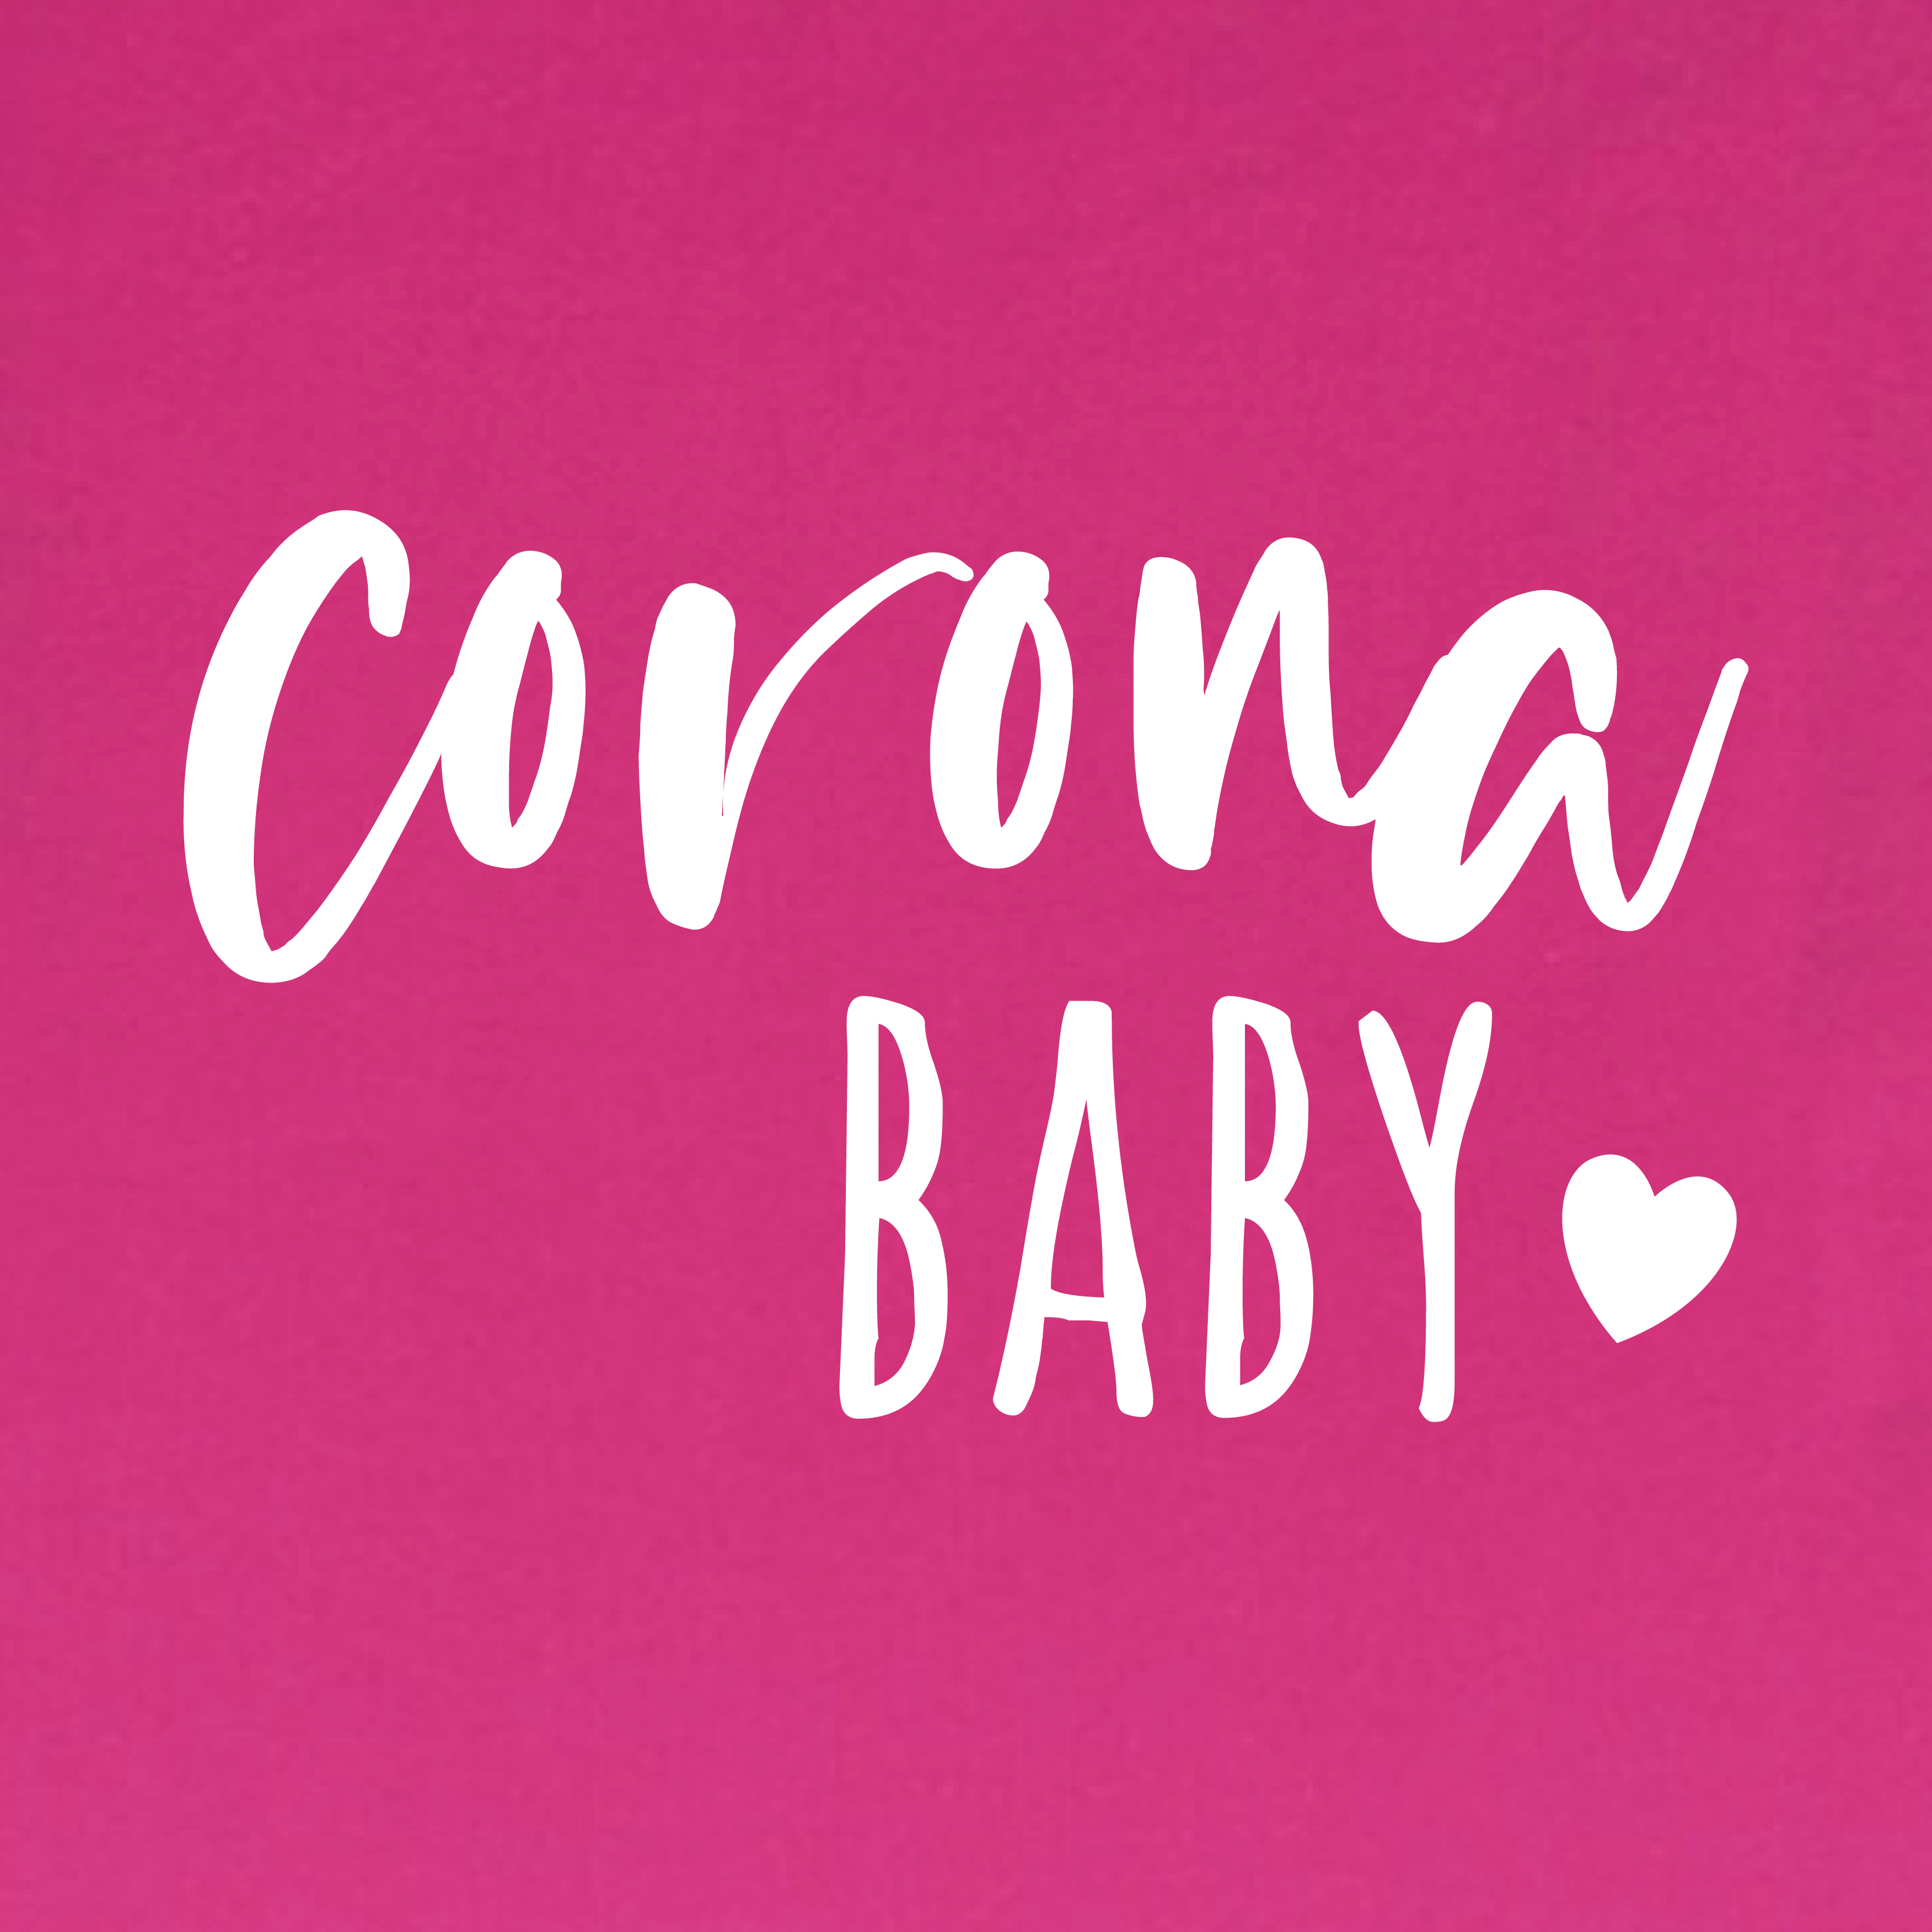 Quarantaine design 5 -  Corona Baby